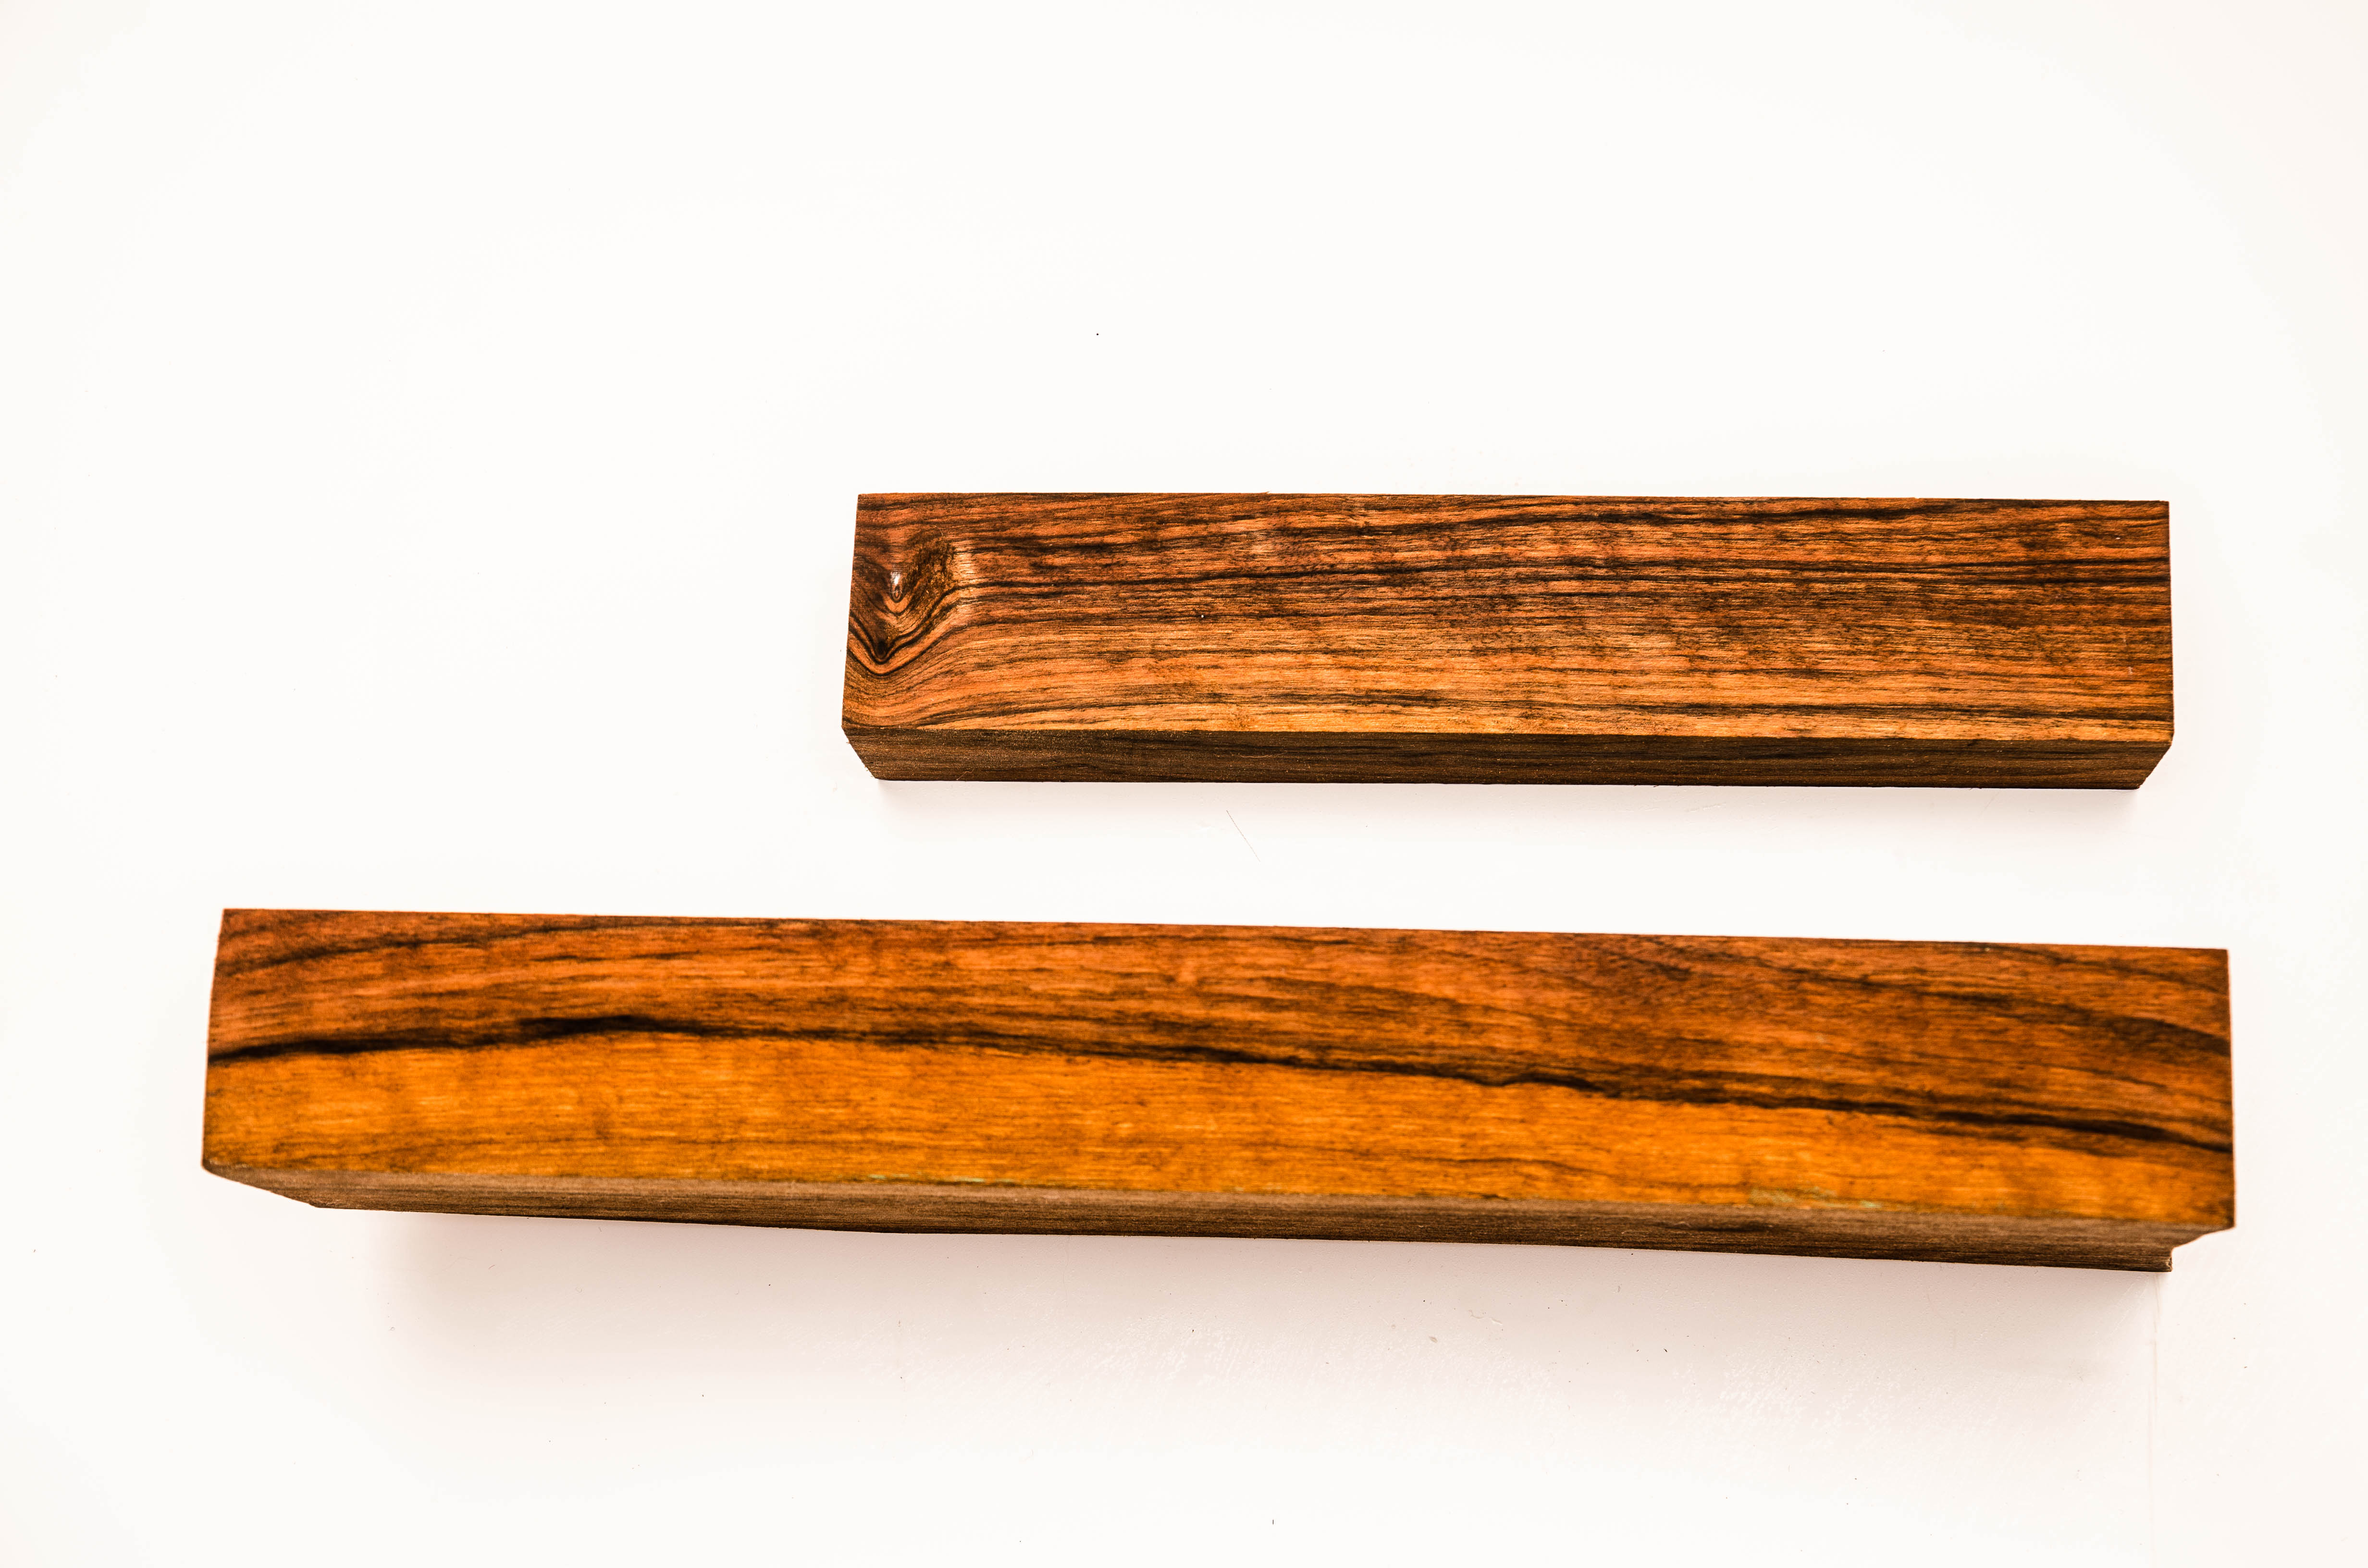 walnut_stock_blanks_for_guns_and_rifles-0452